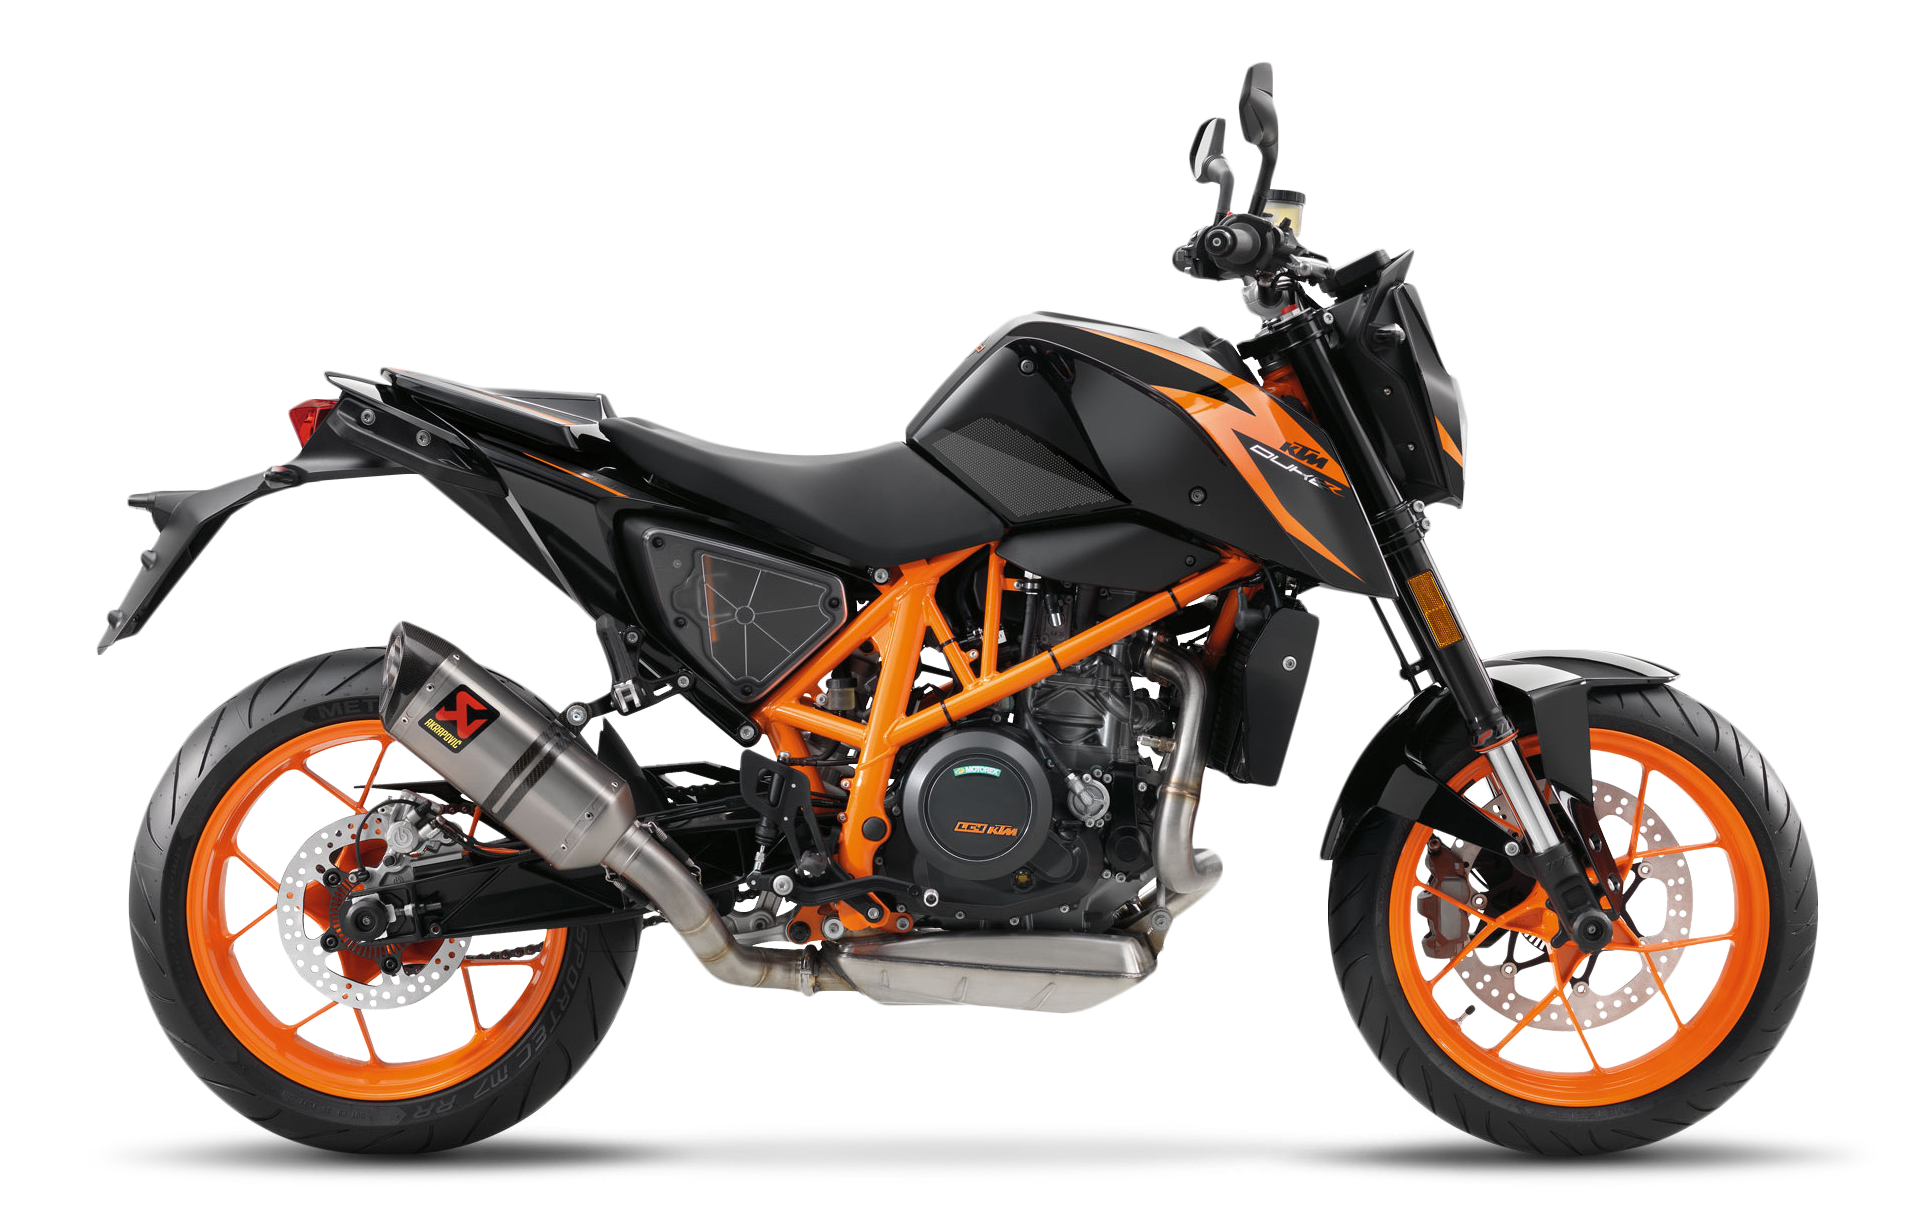 duke 690 r 2017 motos ktm precio 13 700 somos moto per. Black Bedroom Furniture Sets. Home Design Ideas